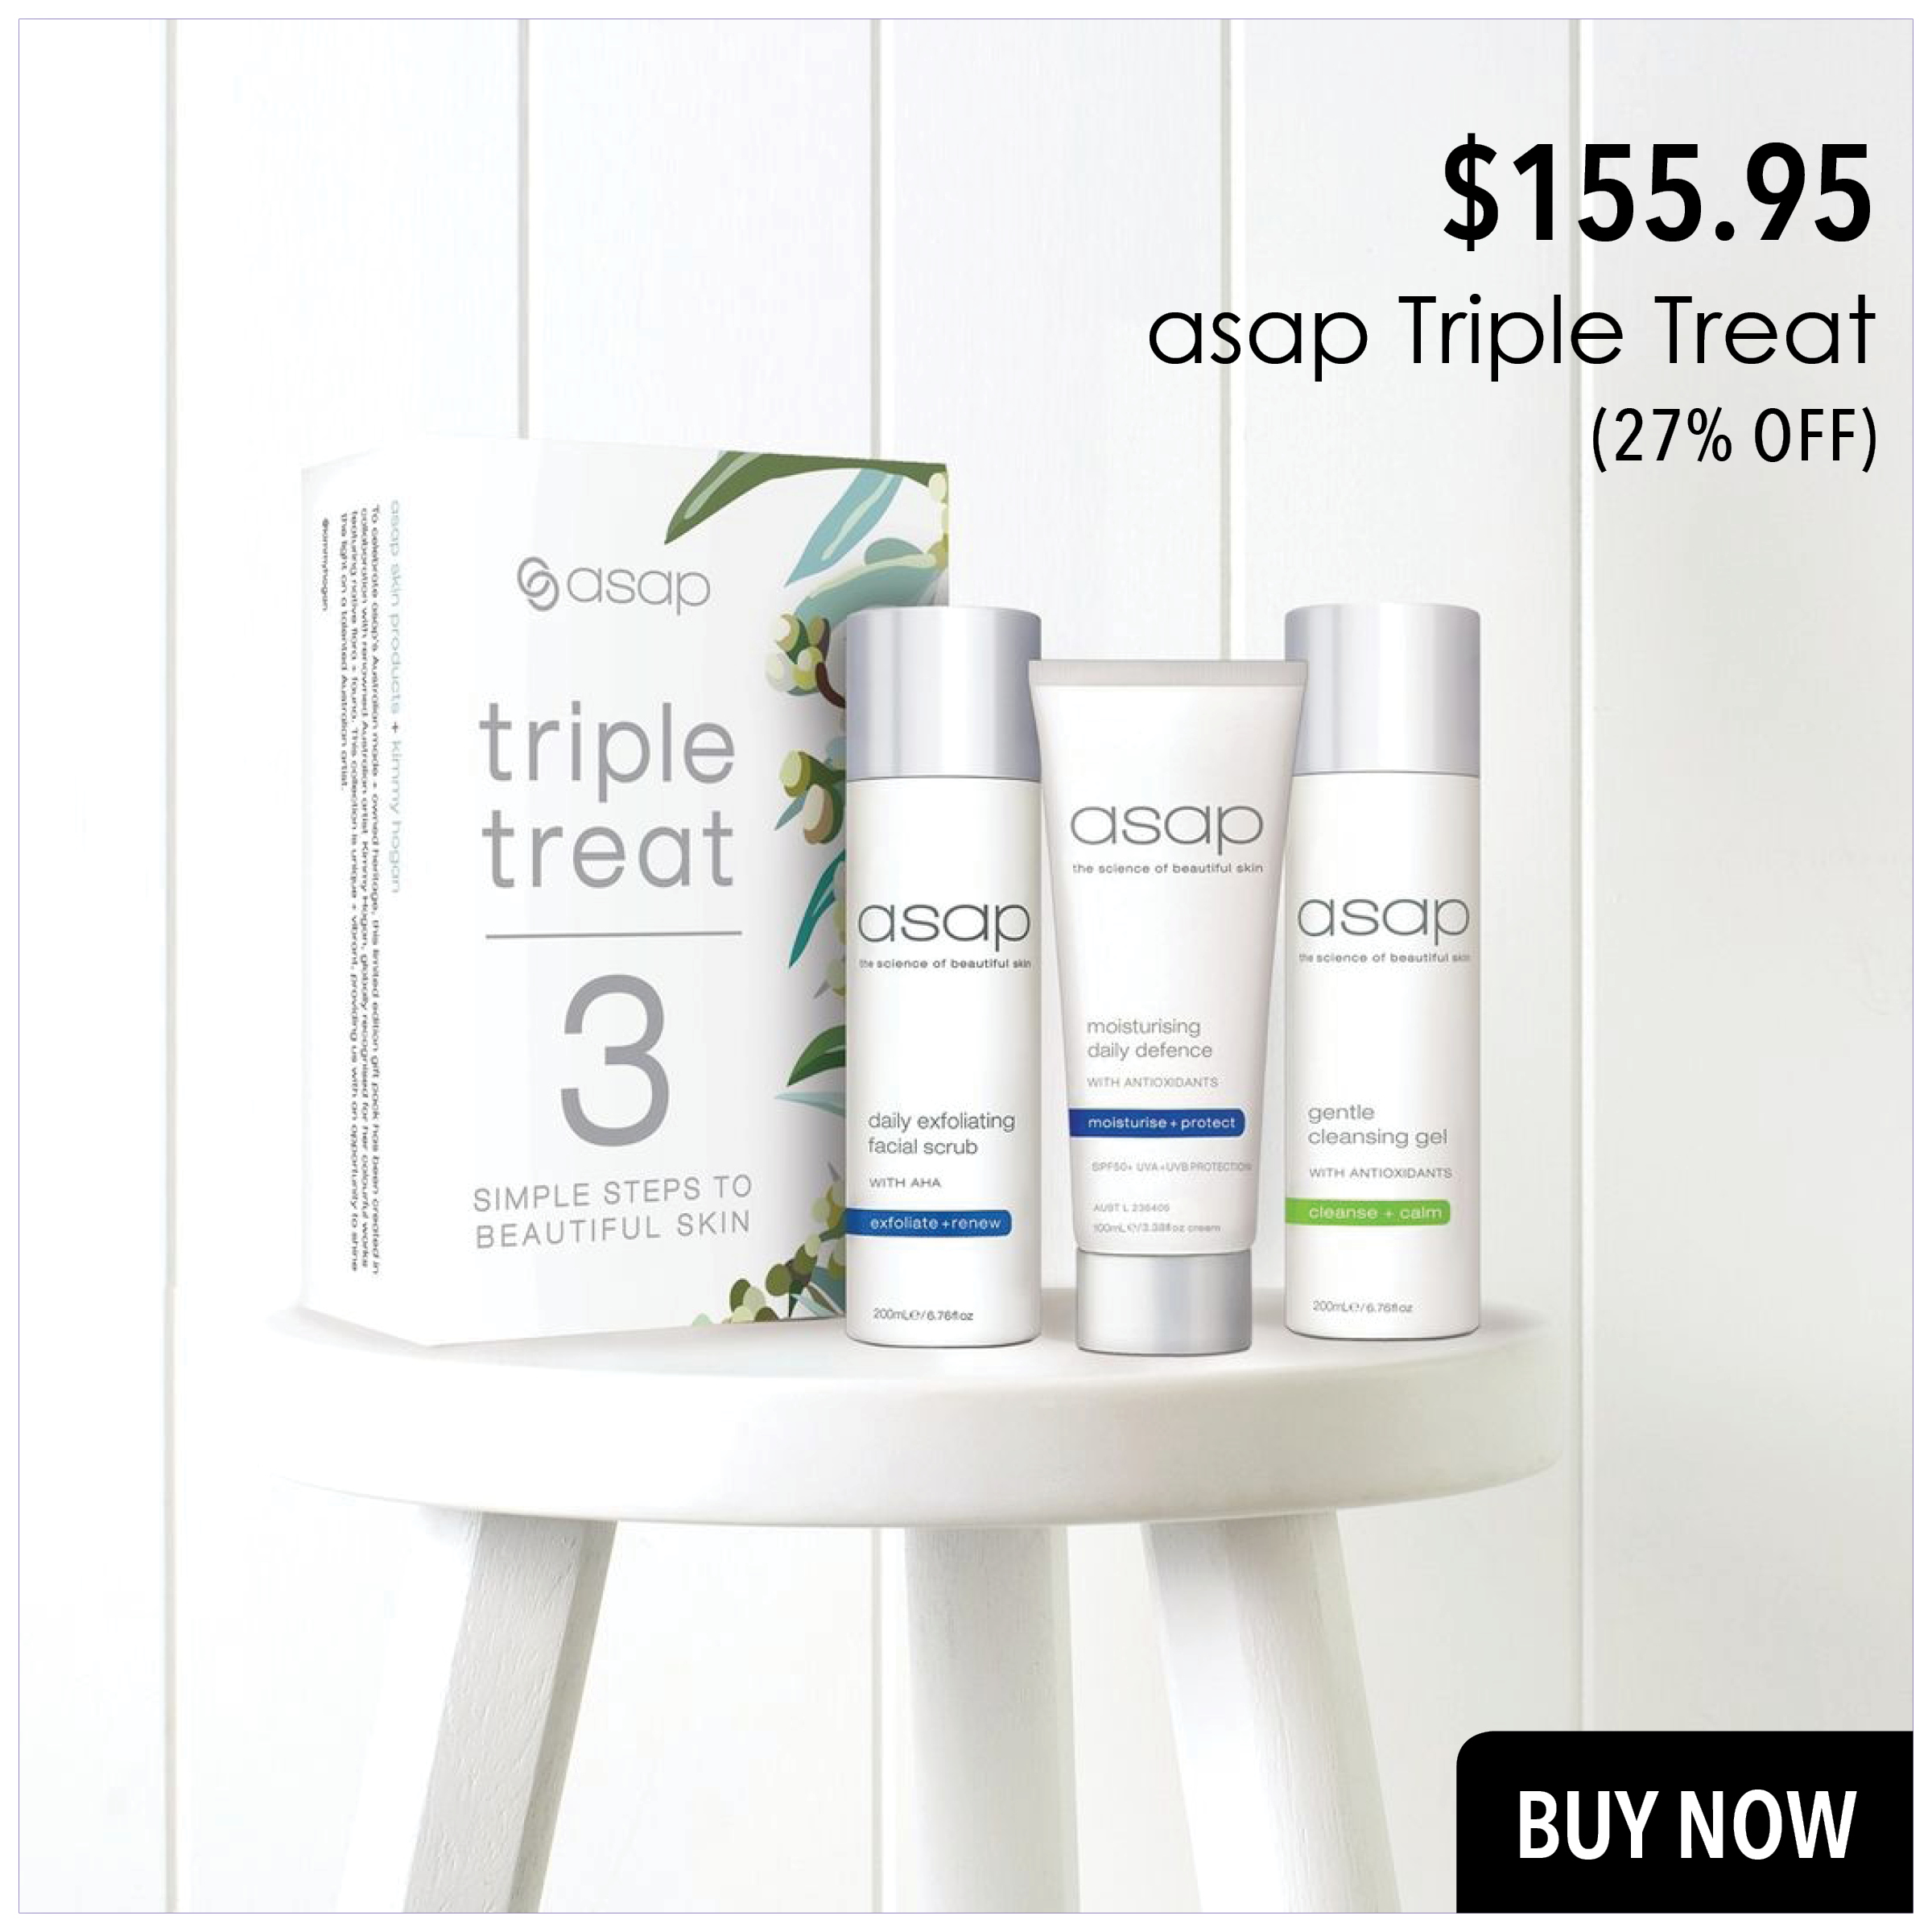 asap Triple Treat with 27% off. Best price in NZ for the best combo pack in NZ.